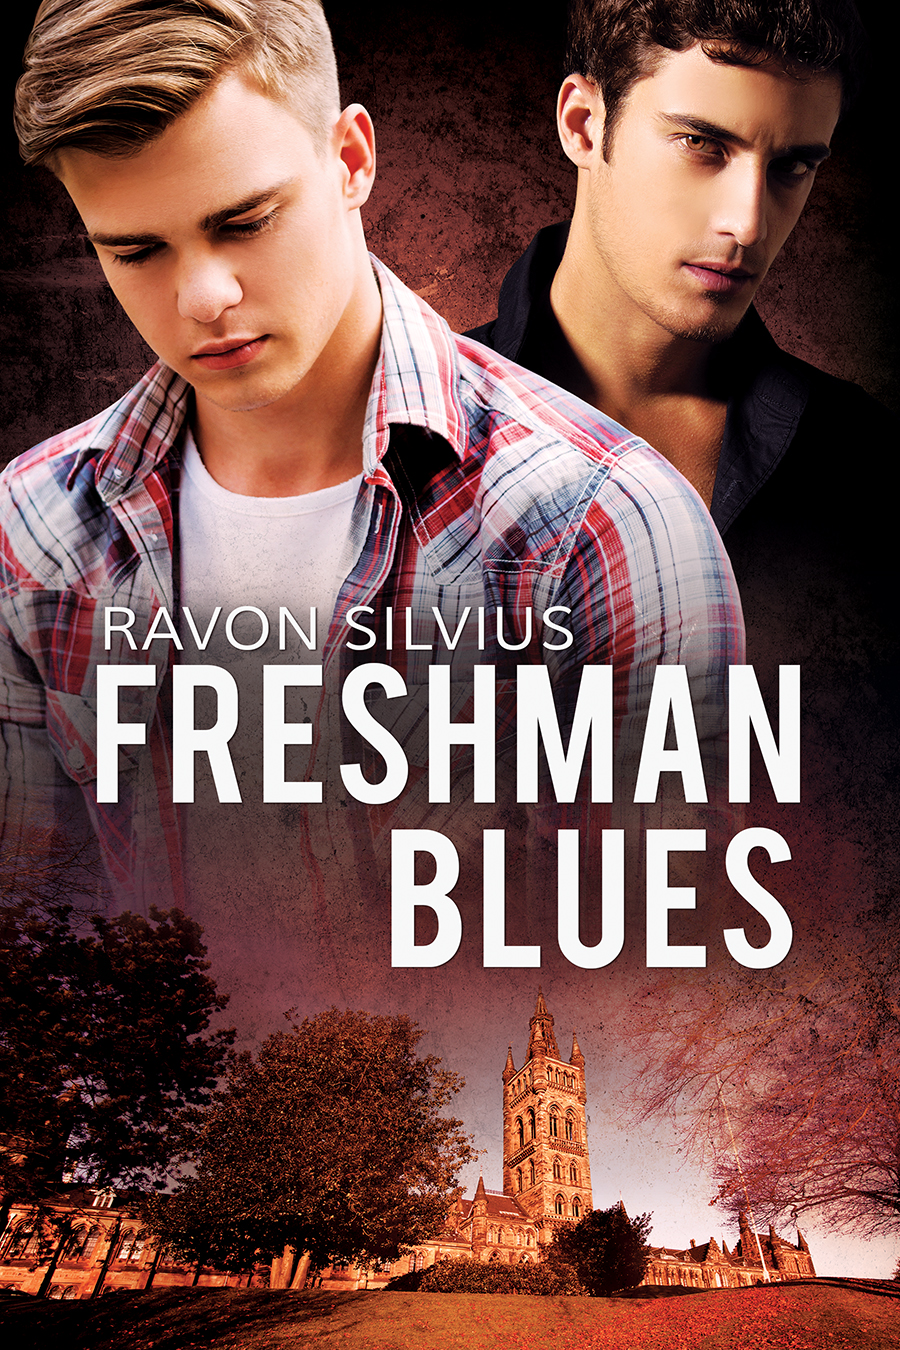 freshmen blues The difficulty of the workload i will get a dozen or more phone calls over the holiday weekend from panicked parents who are convinced that their child needs to transfer.